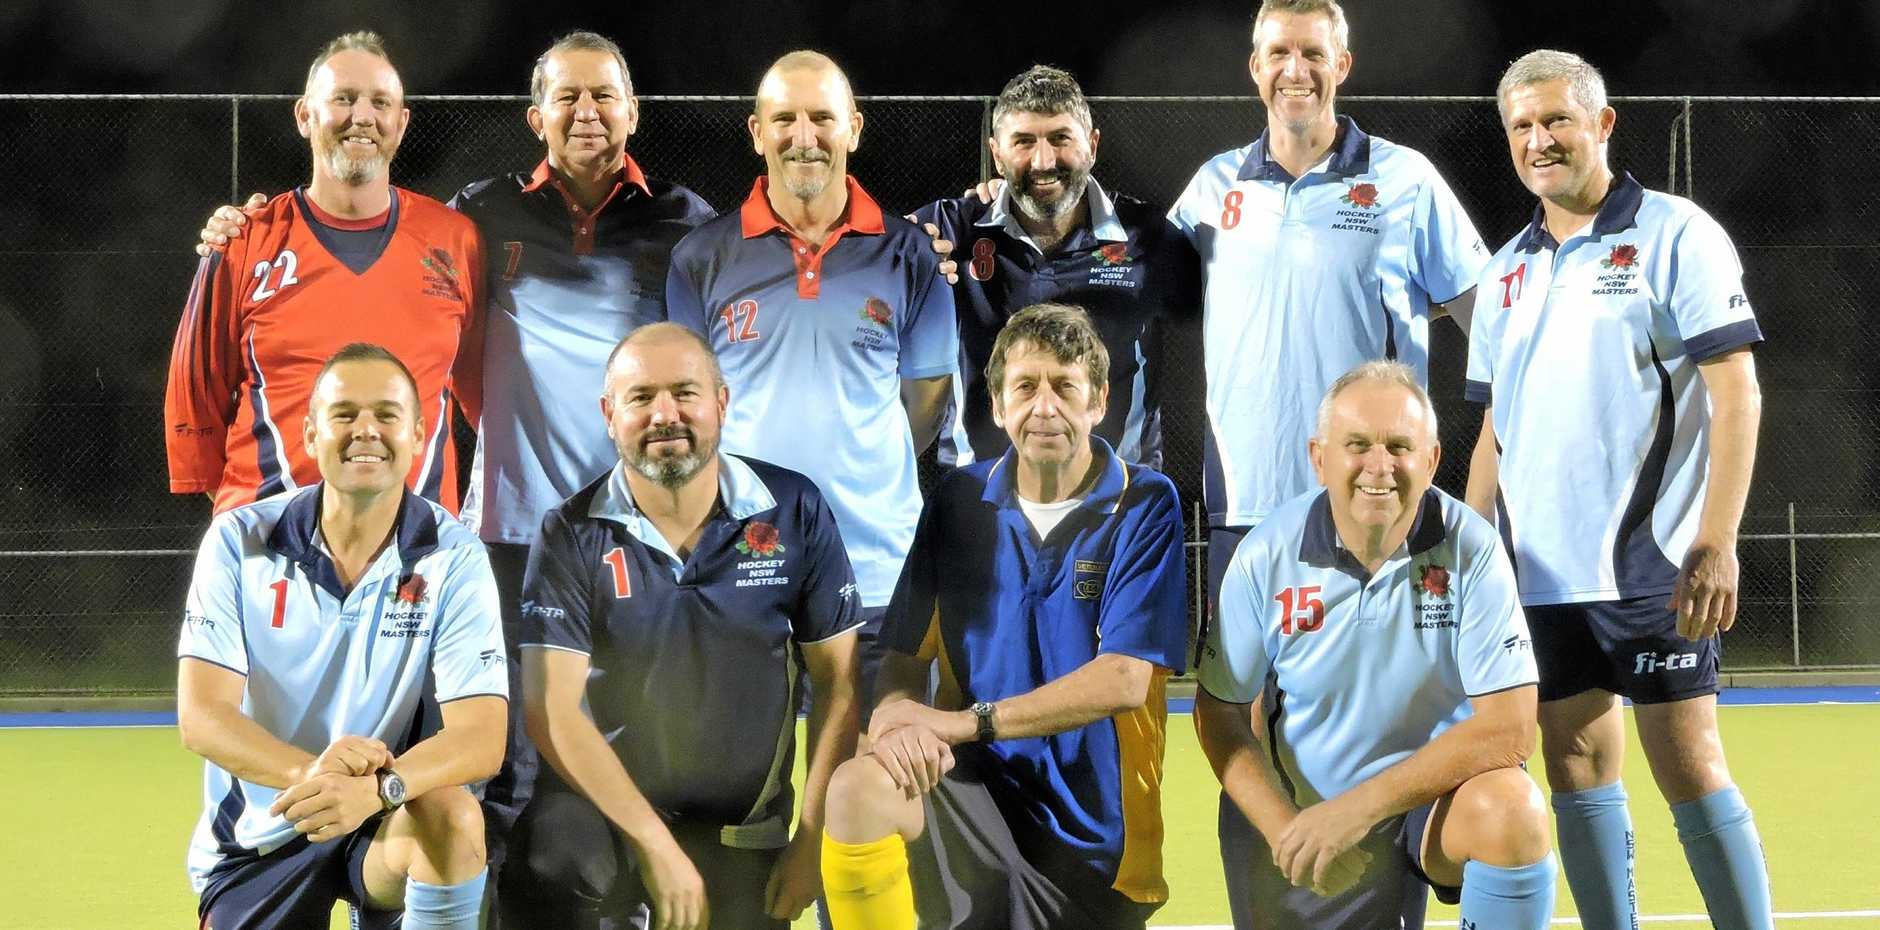 MIGHTY MASTERS: Those selected include (back) Dale Neaves, Keith Jervis, David Rake, Paul Mills, Scott Waddell, Dave Dedman; (front) Jonathan Williams, Adam Ellison, Phil Grant and Kerry Wide.